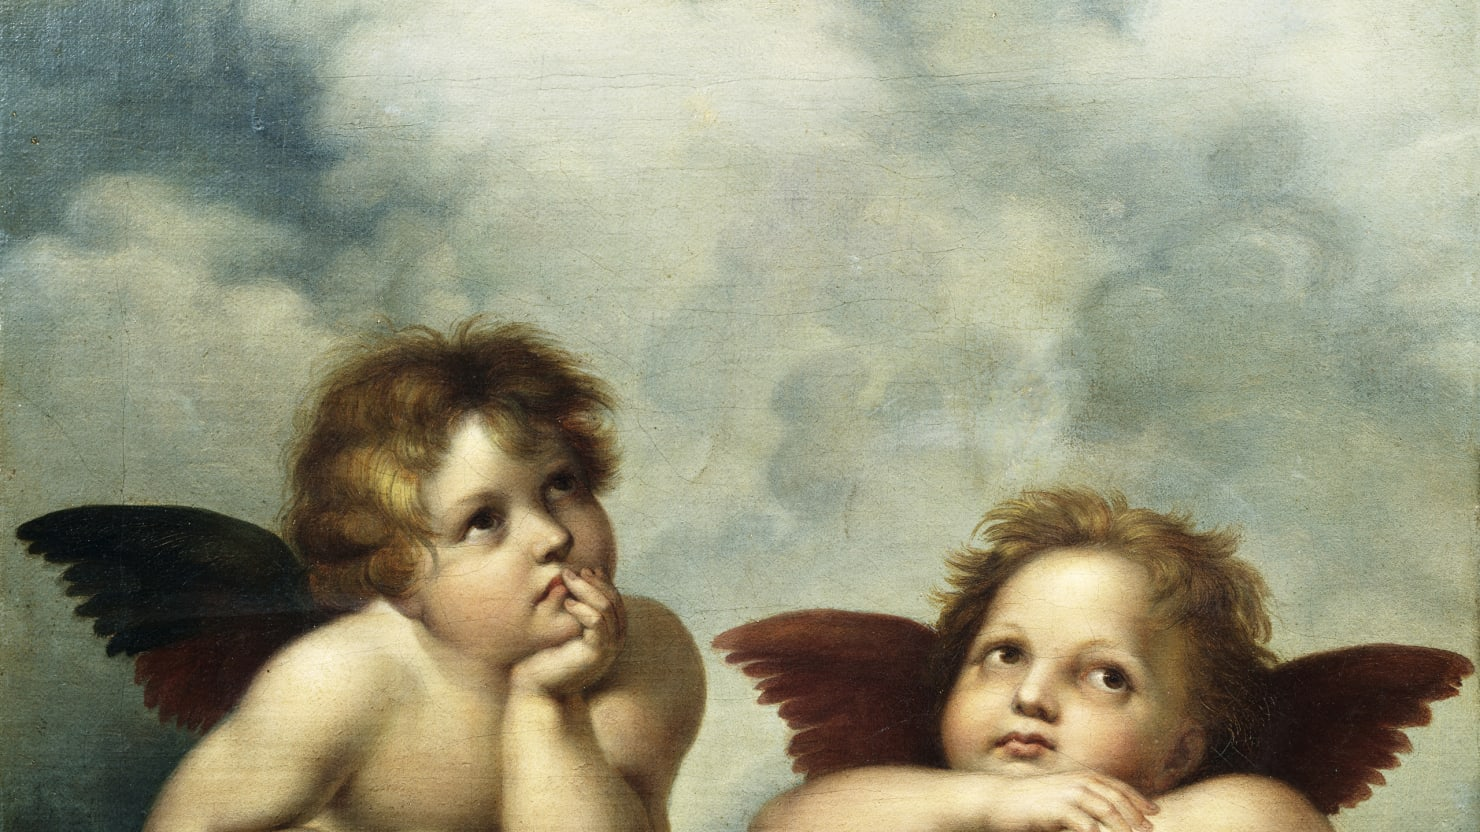 Angels Stock Images - Download 26 Royalty Free Photos